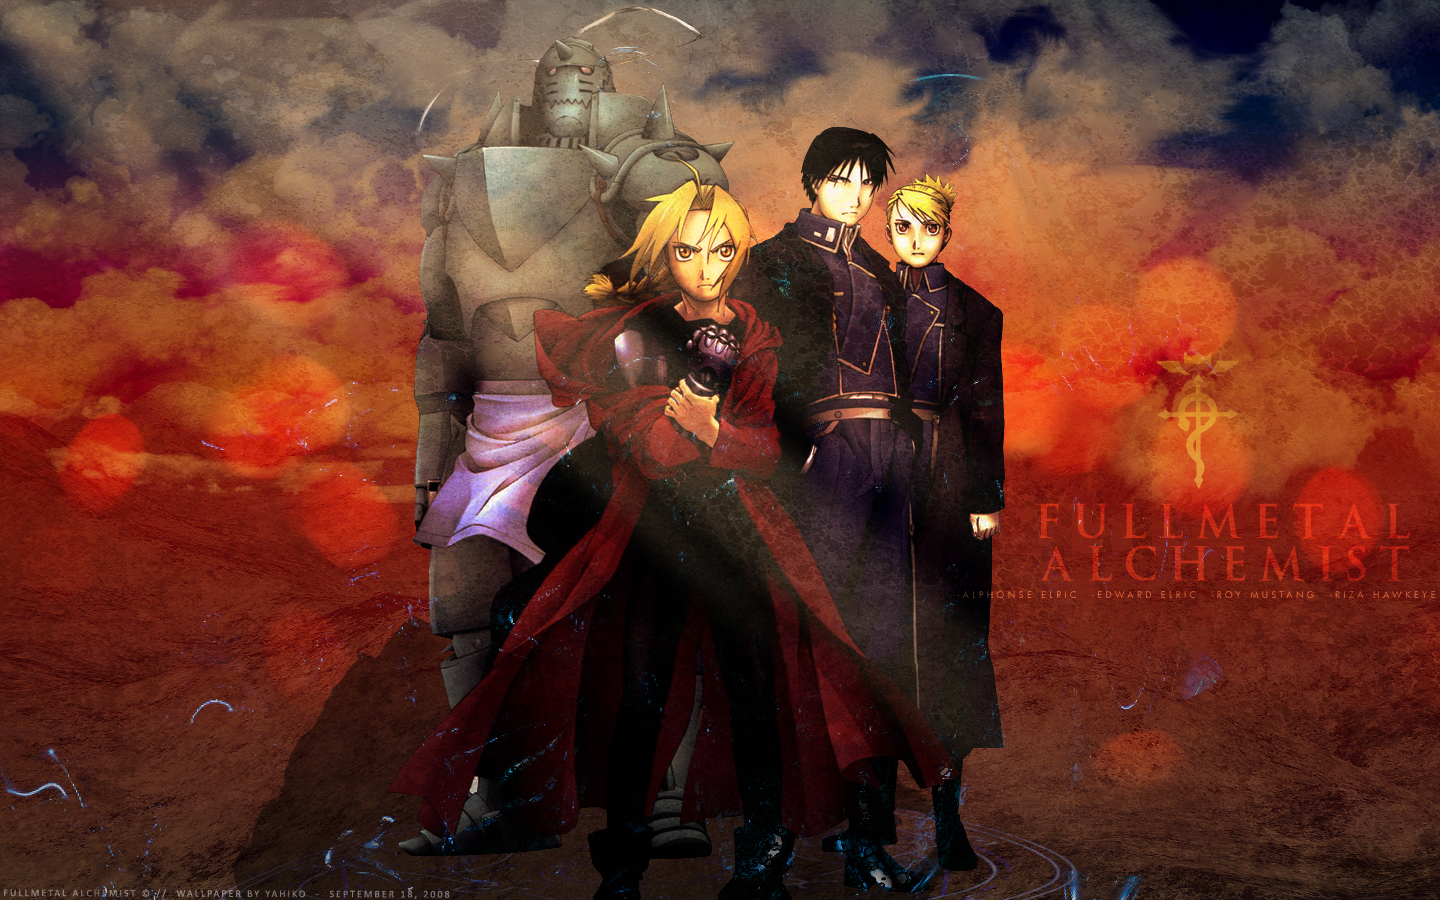 Manga And Anime Wallpapers: Fullmetal Alchemist HD Wallpaper